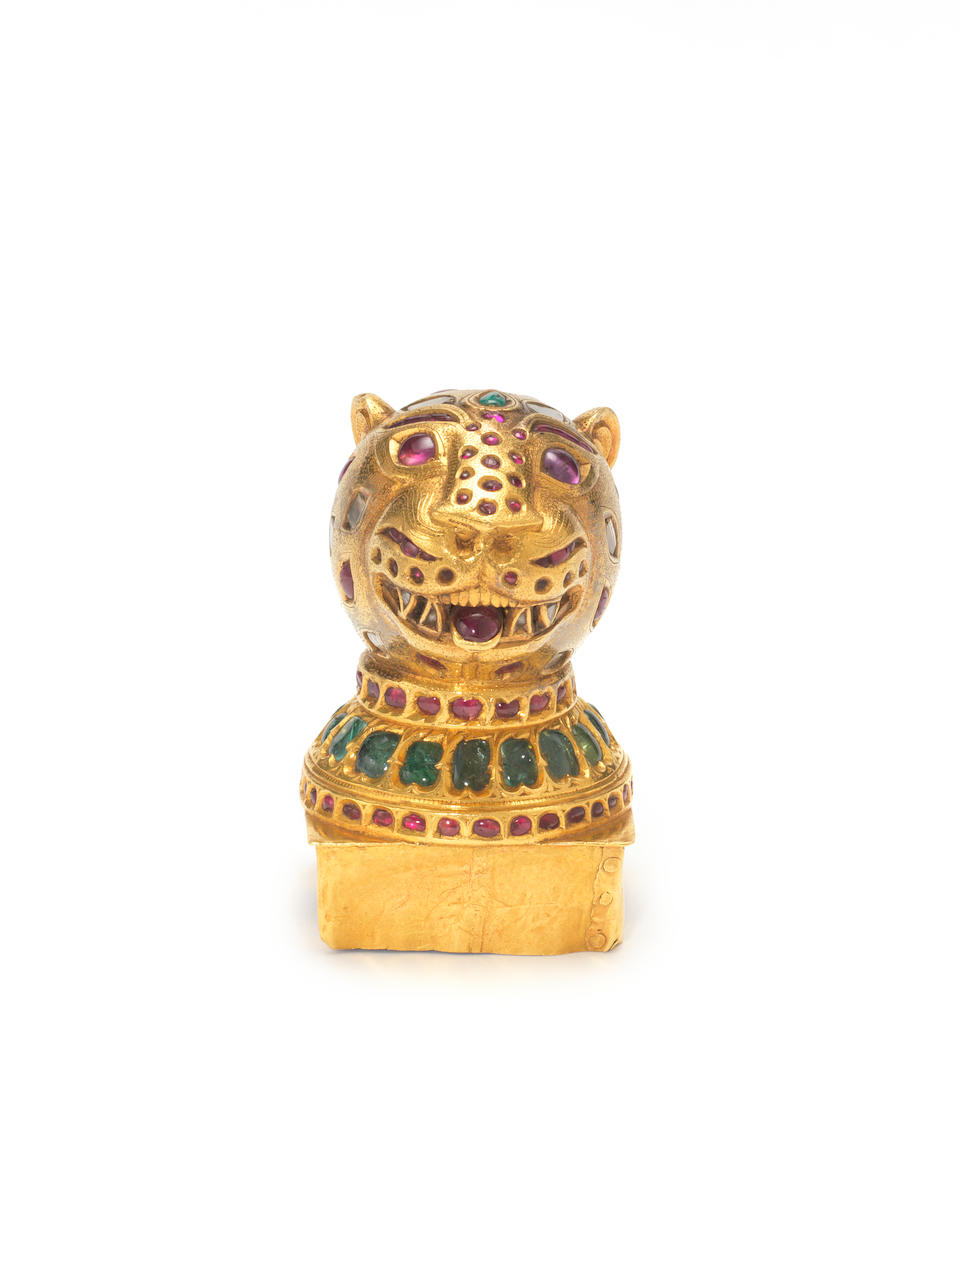 An Indian gem-set gold finial in the form of a tiger's head from the throne of Tipu Sultan, circa 1790